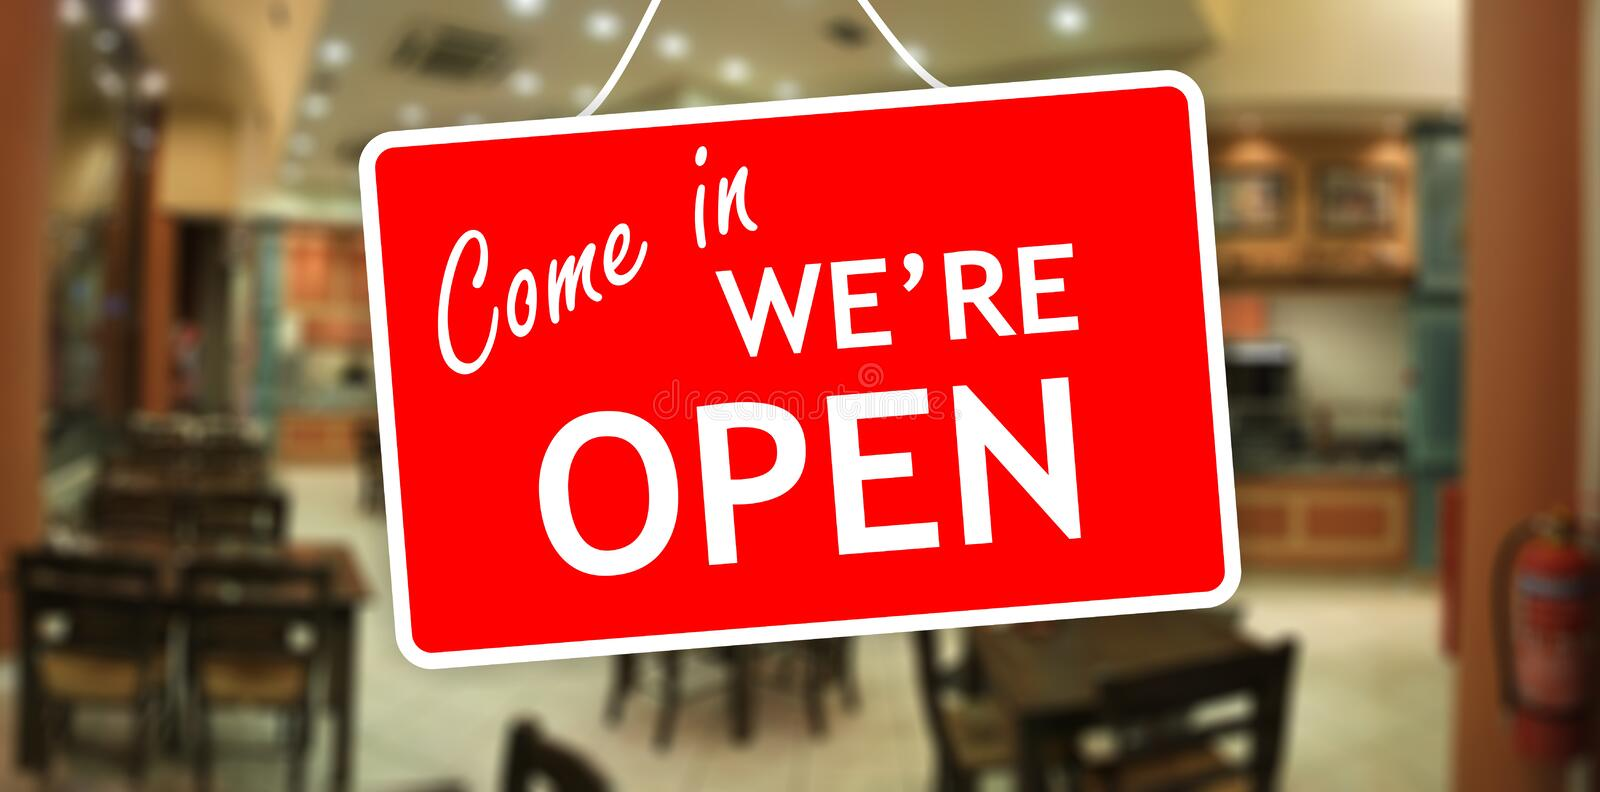 We are open sign on glass storefront stock photo